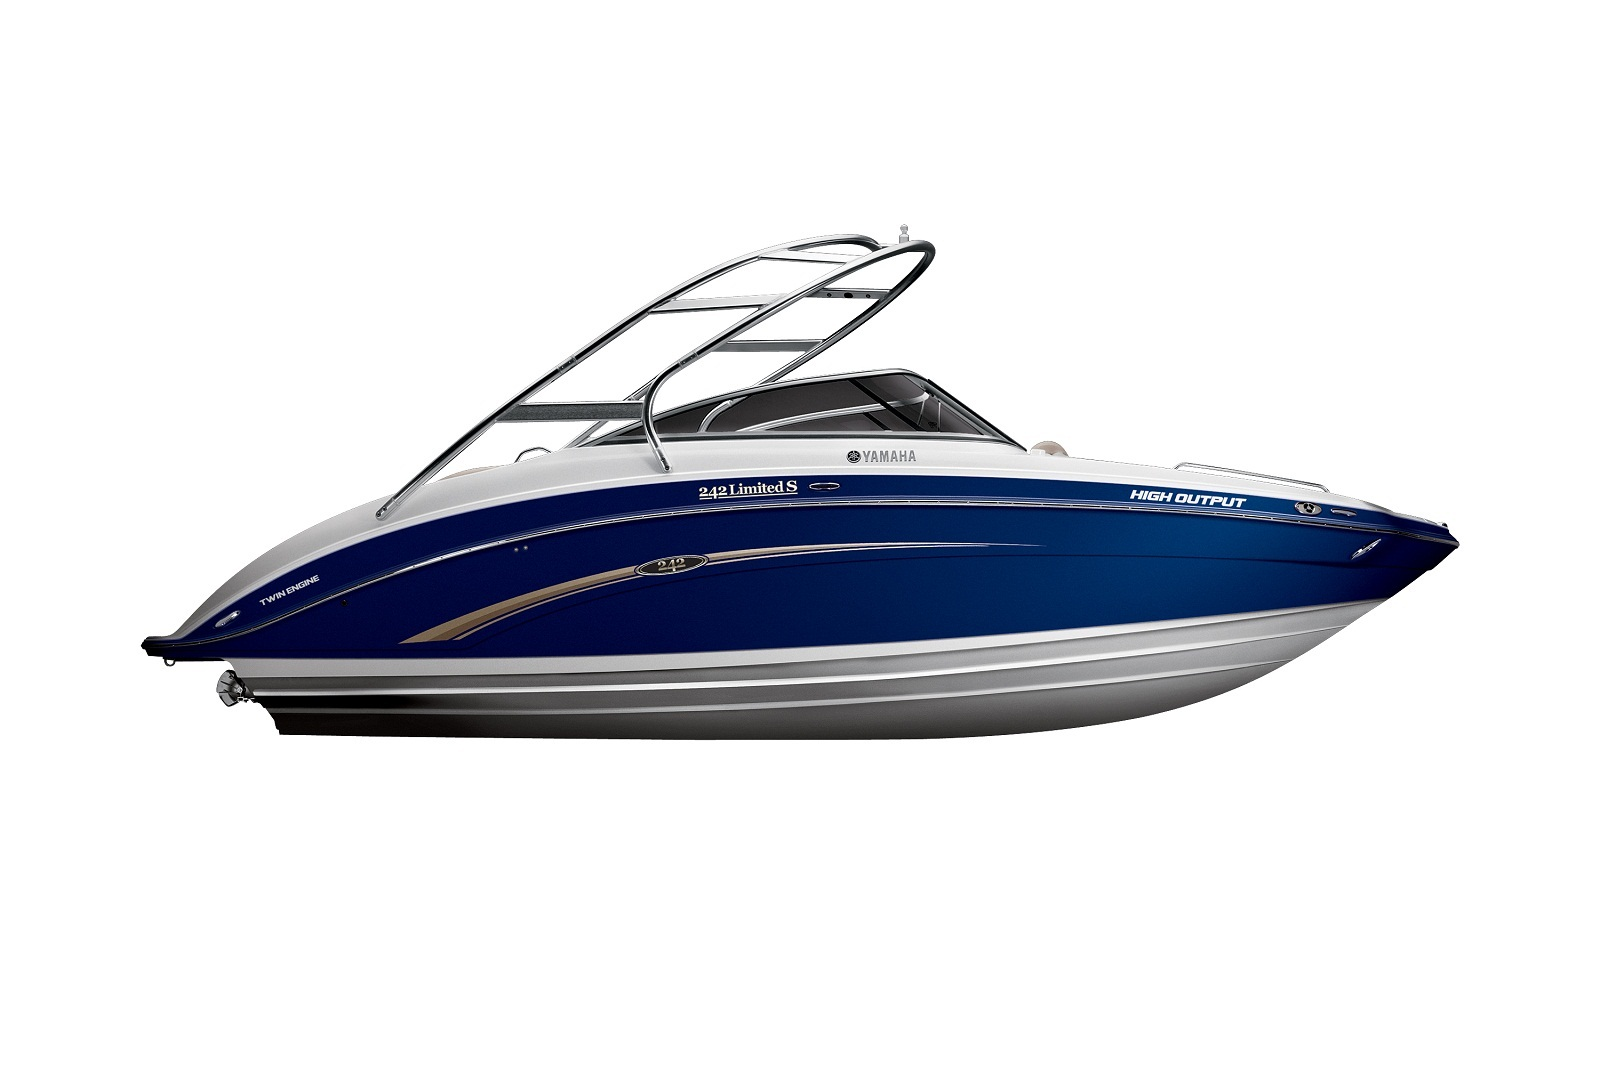 2011 yamaha 242 limited s top speed for Yamaha jet boat reliability